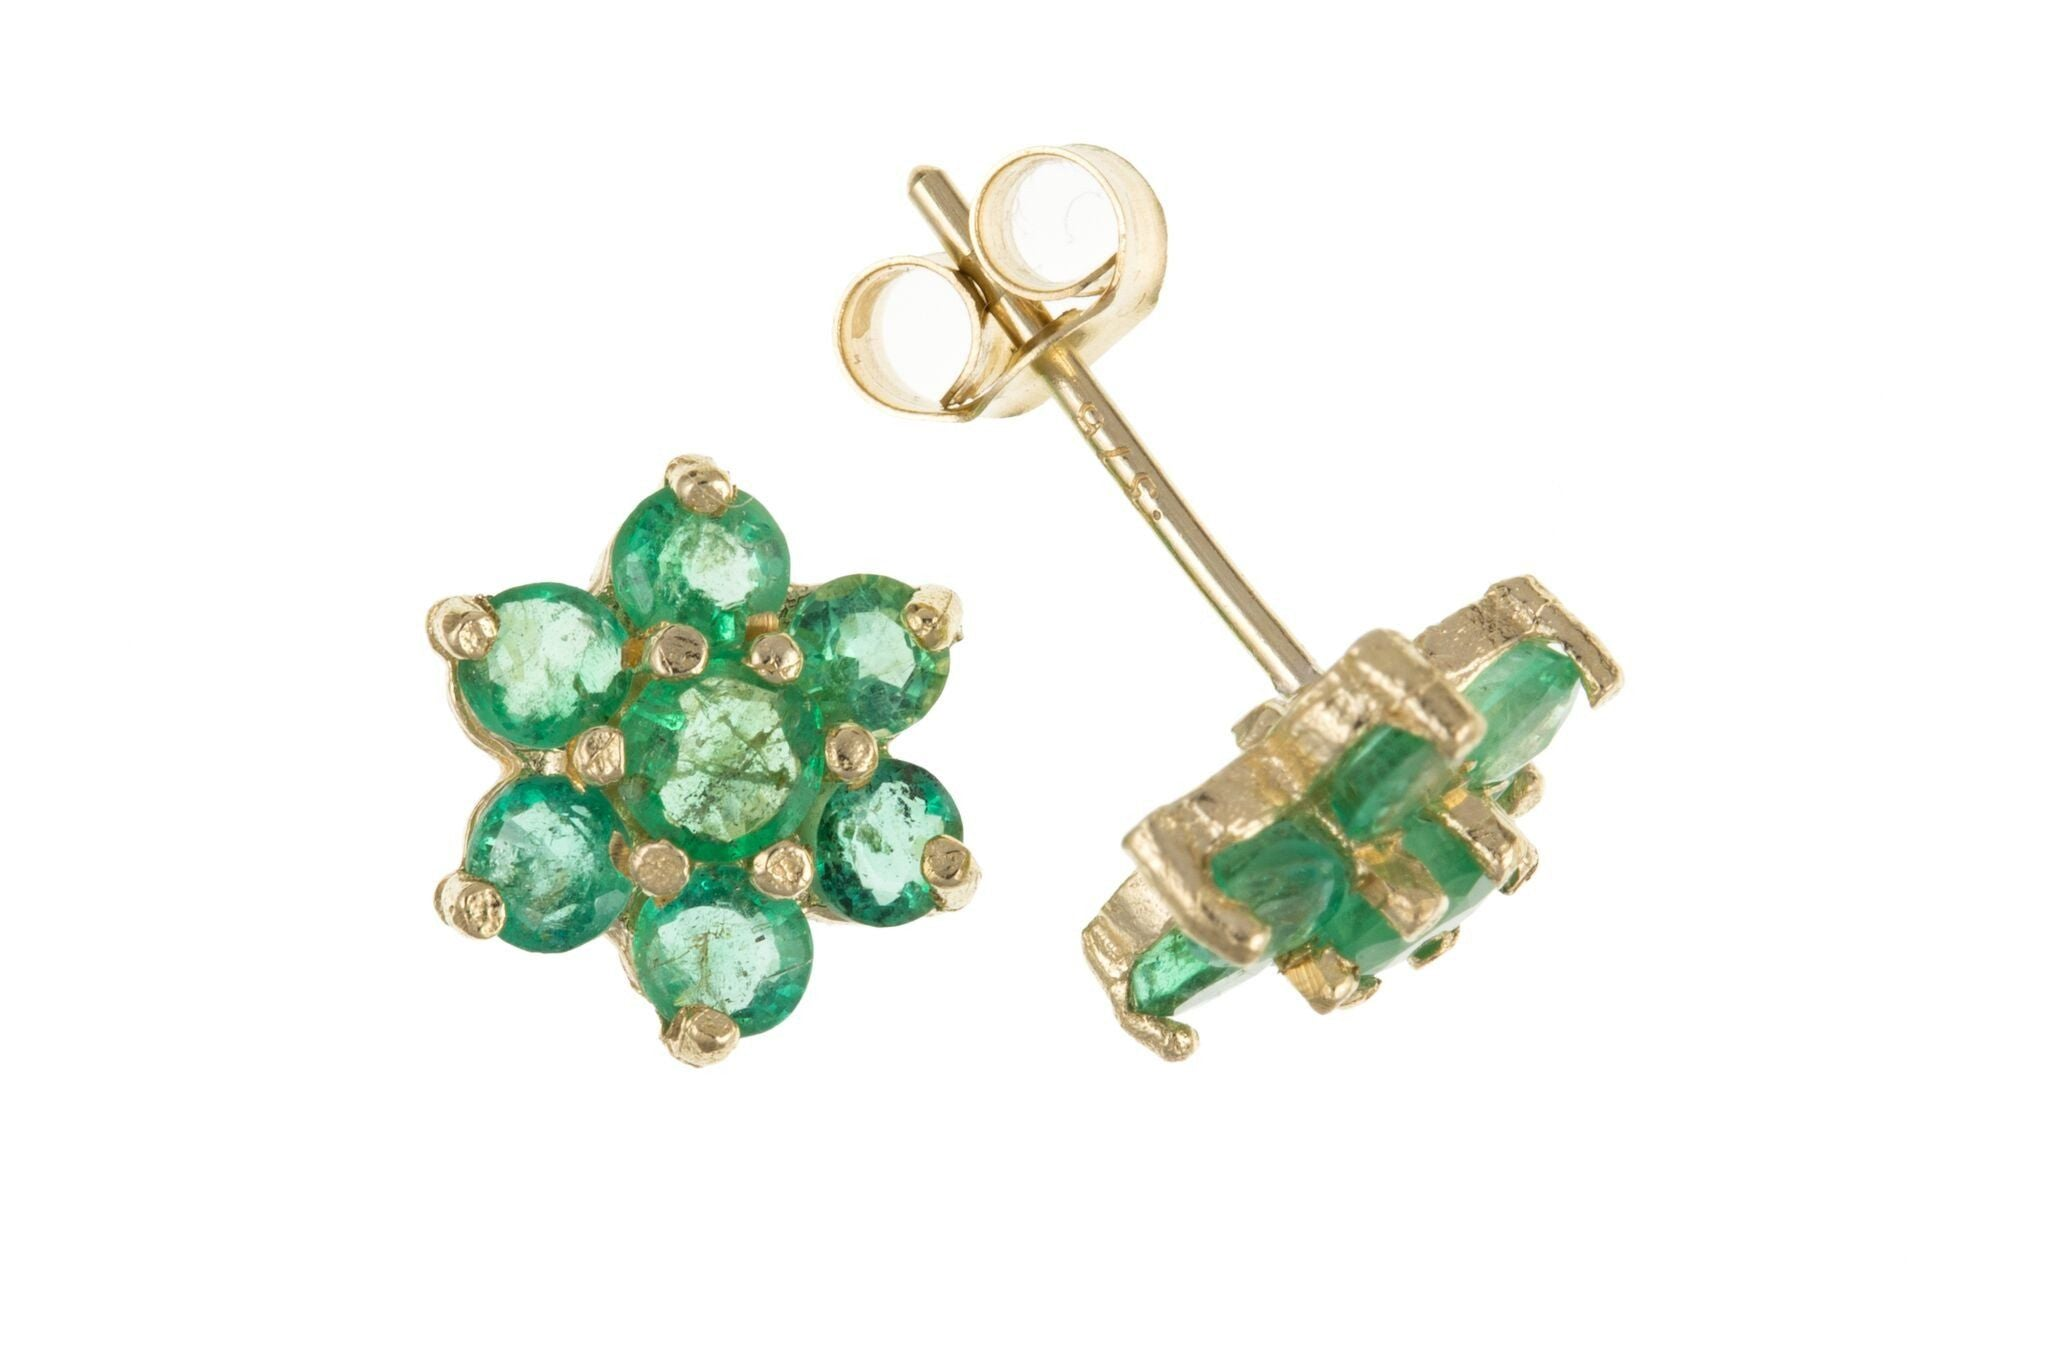 9ct Yellow Gold Emerald Flower Stud Earrings